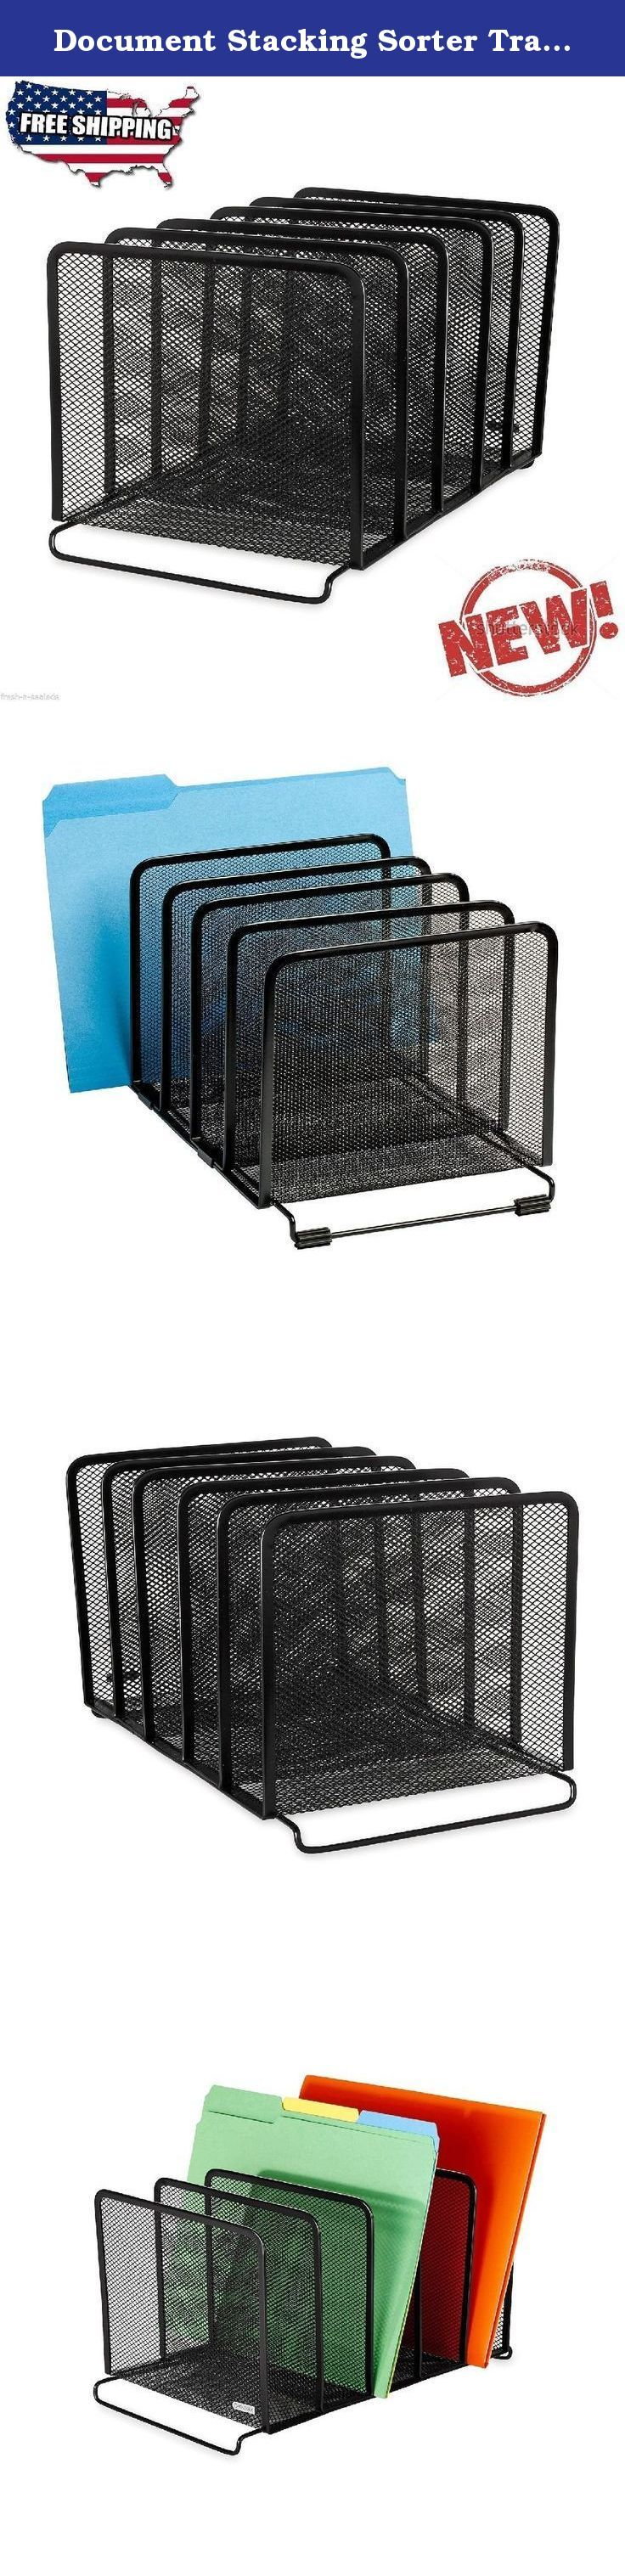 Document Stacking Sorter Tray Desktop Organizer Office Desk File Folder Holder. Features:This tray sorter has 5 sections to help keep your desktop organized and clutter-free.Mesh collection desk accessories have a simple and elegant industrial look and sturdy metal construction.Desktop organizer's vertical vanes hold notepads books binders folder and other items.Stacks on top of Stacking Side-Load Letter Tray (62563).8.25 inches long by 14.375 inches wide by 7.75 inches high.Product...